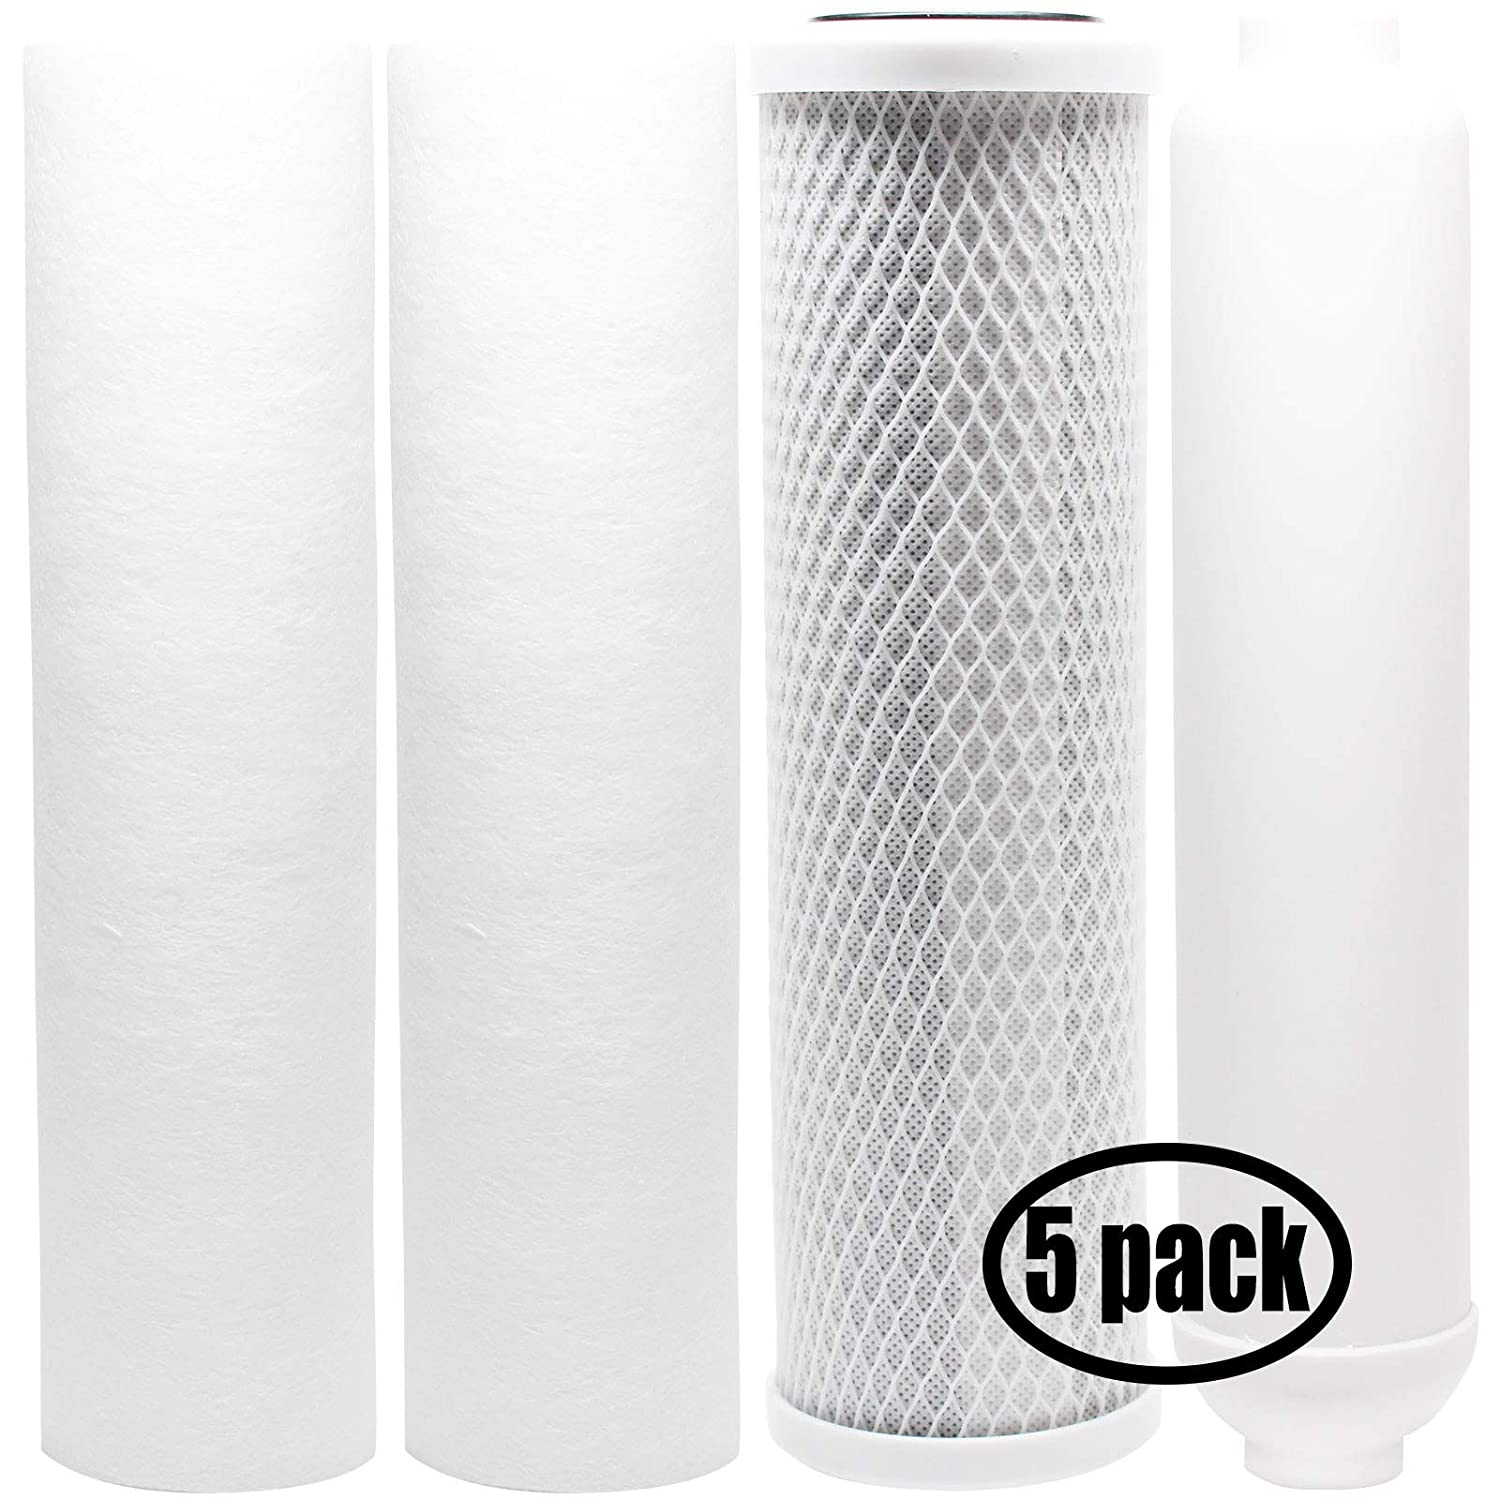 Includes Carbon Block Filter Replacement Filter Kit Compatible with Topway Global TGI-525 RO System TGI PP Sediment Filter GAC Filter /& Inline Filter Cartridge